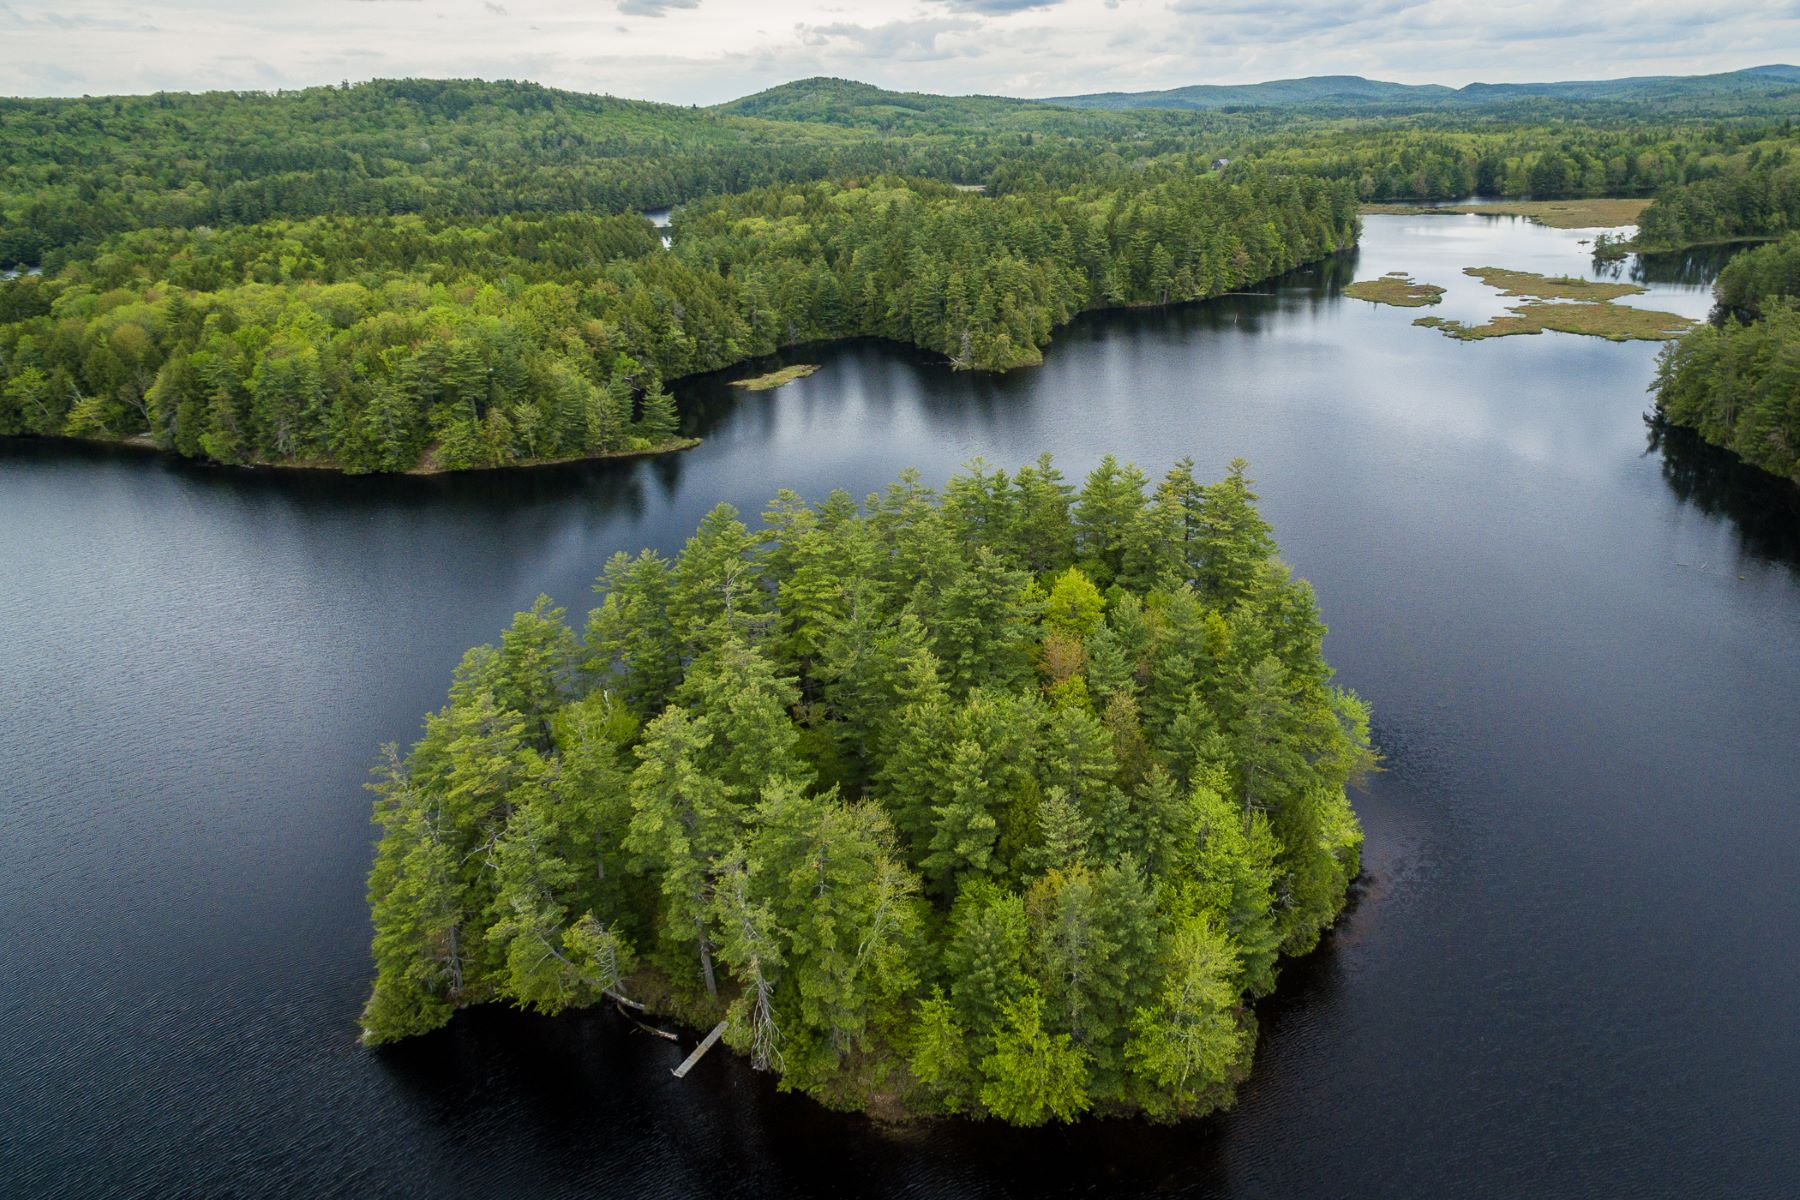 Private Island for Sale at Ledge Island, Steven's Pond Liberty, Maine 04949 United States